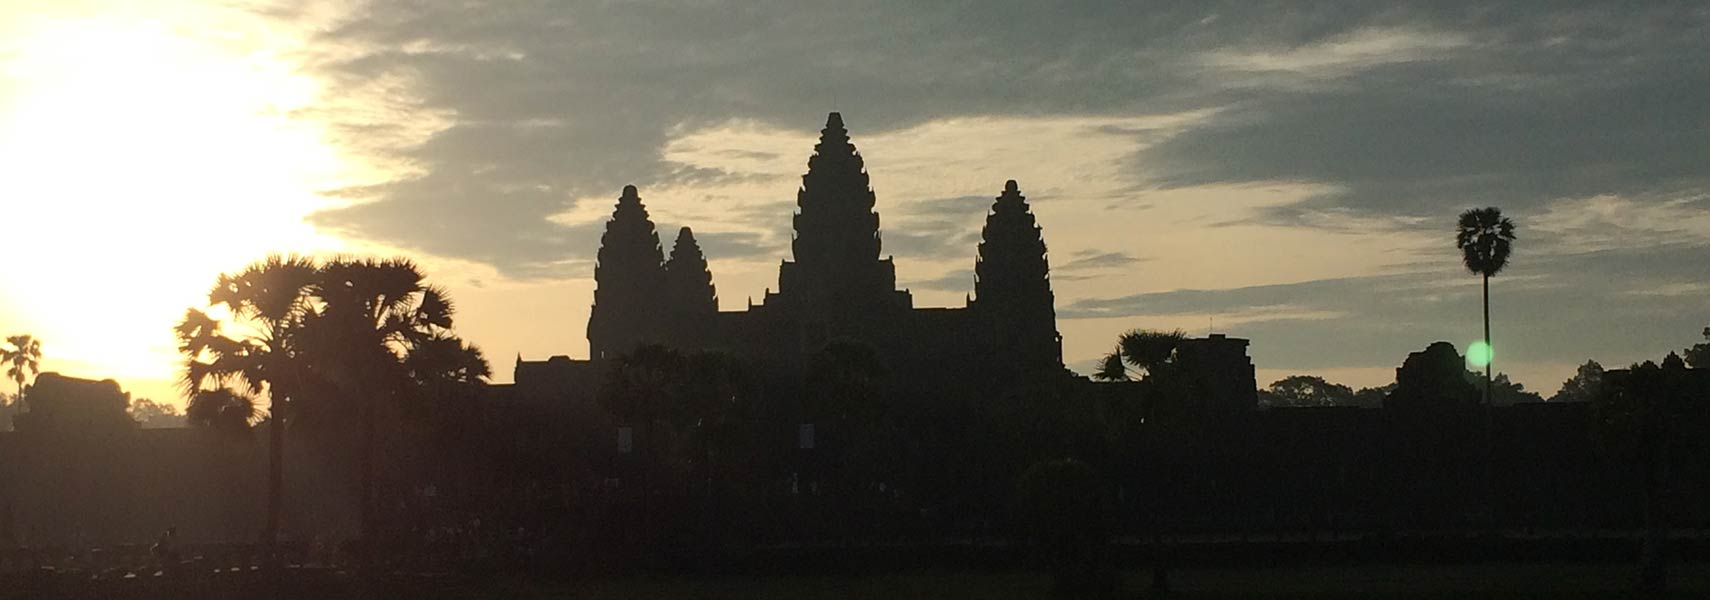 Main view of Angkor Wat temple complex, Cambodia